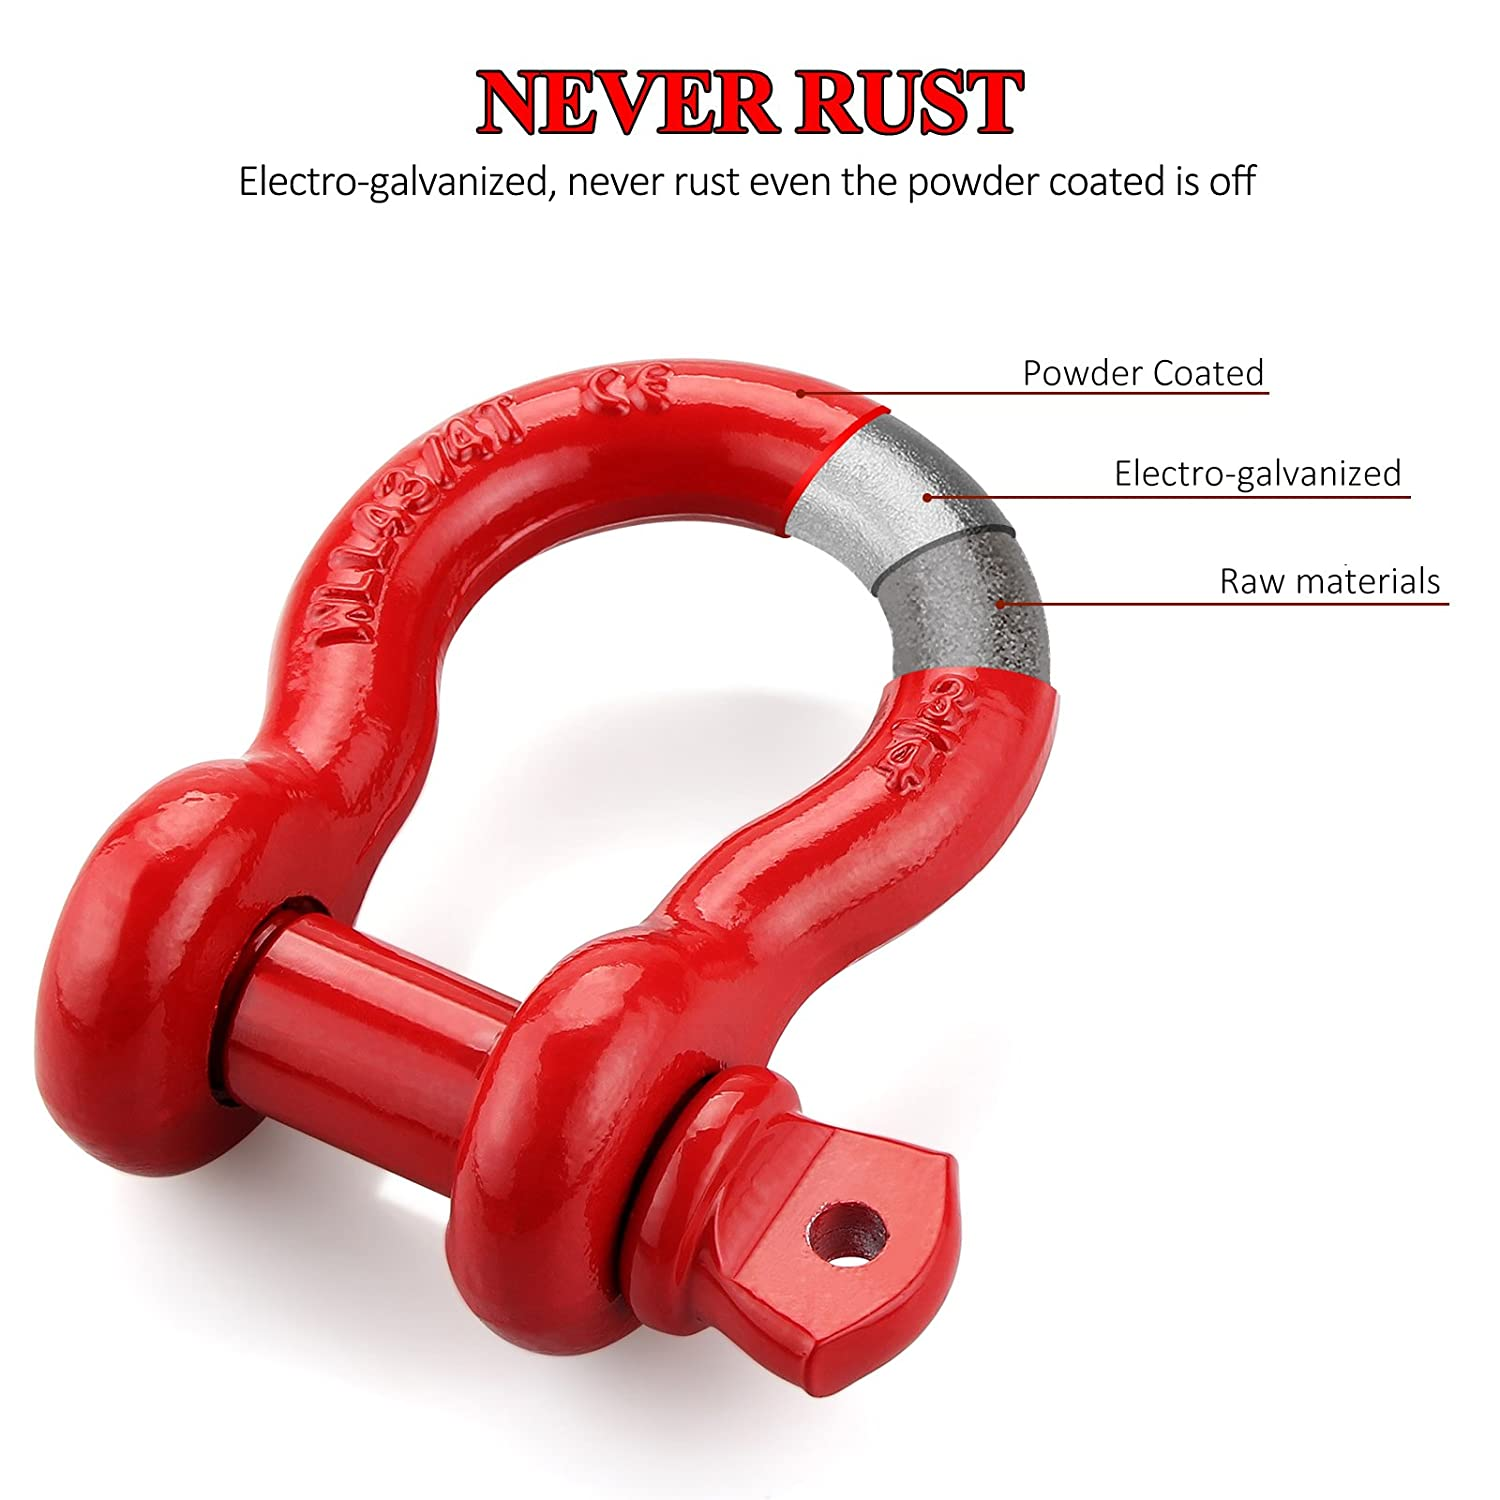 Maximum Break Strength with 7//8 Pin Bow Screw Heavy Duty D Ring for Jeep Vehicle Recovery Red 2 PACK LIBERRWAY D ring Shackle Rugged Unbreakable 28.5 Ton 57000 Lbs Shackles 3//4